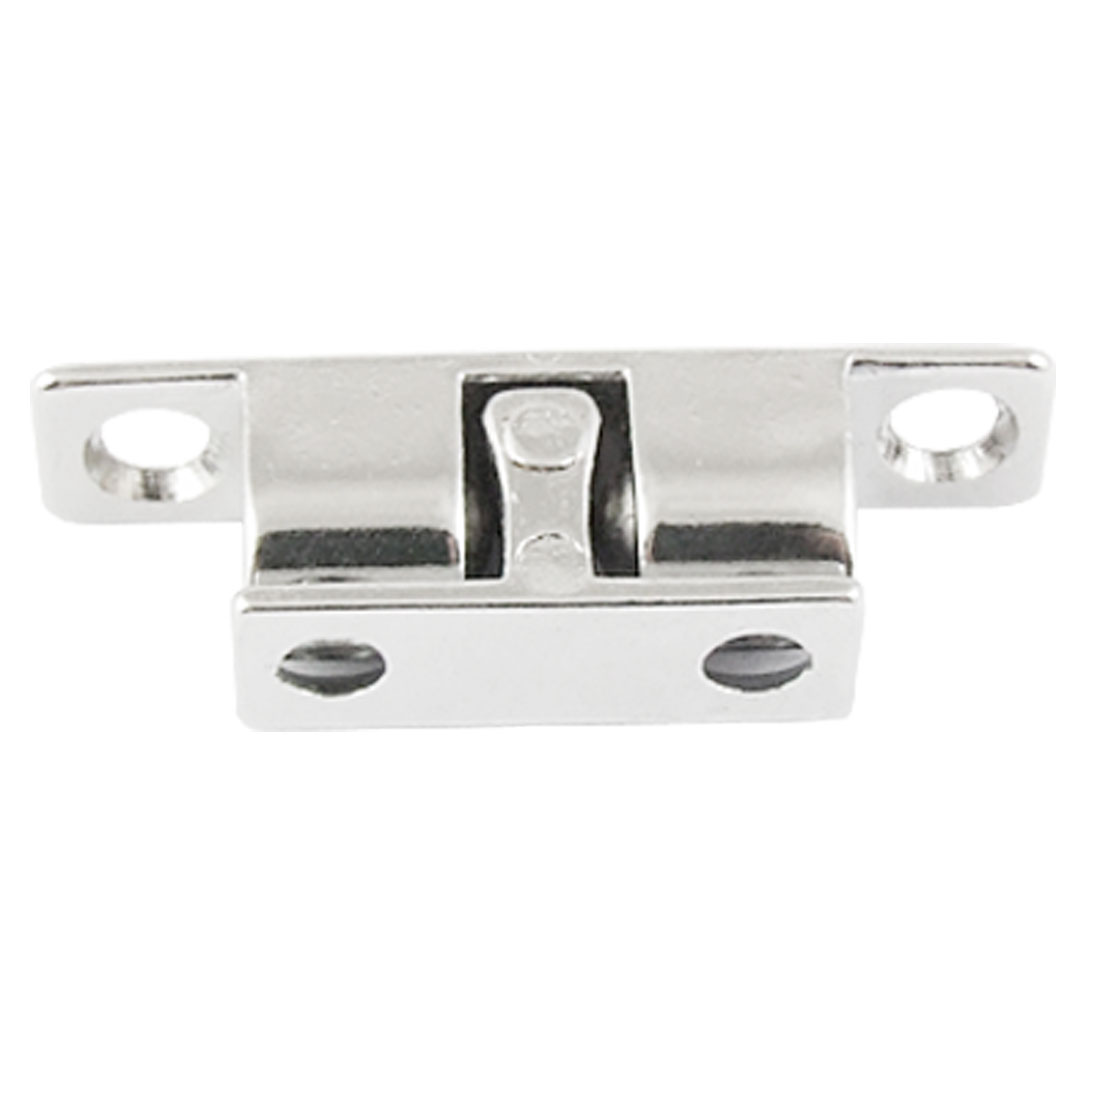 40mm Zinc Alloy Double Ball Catch Silver Tone for Cabinet Door